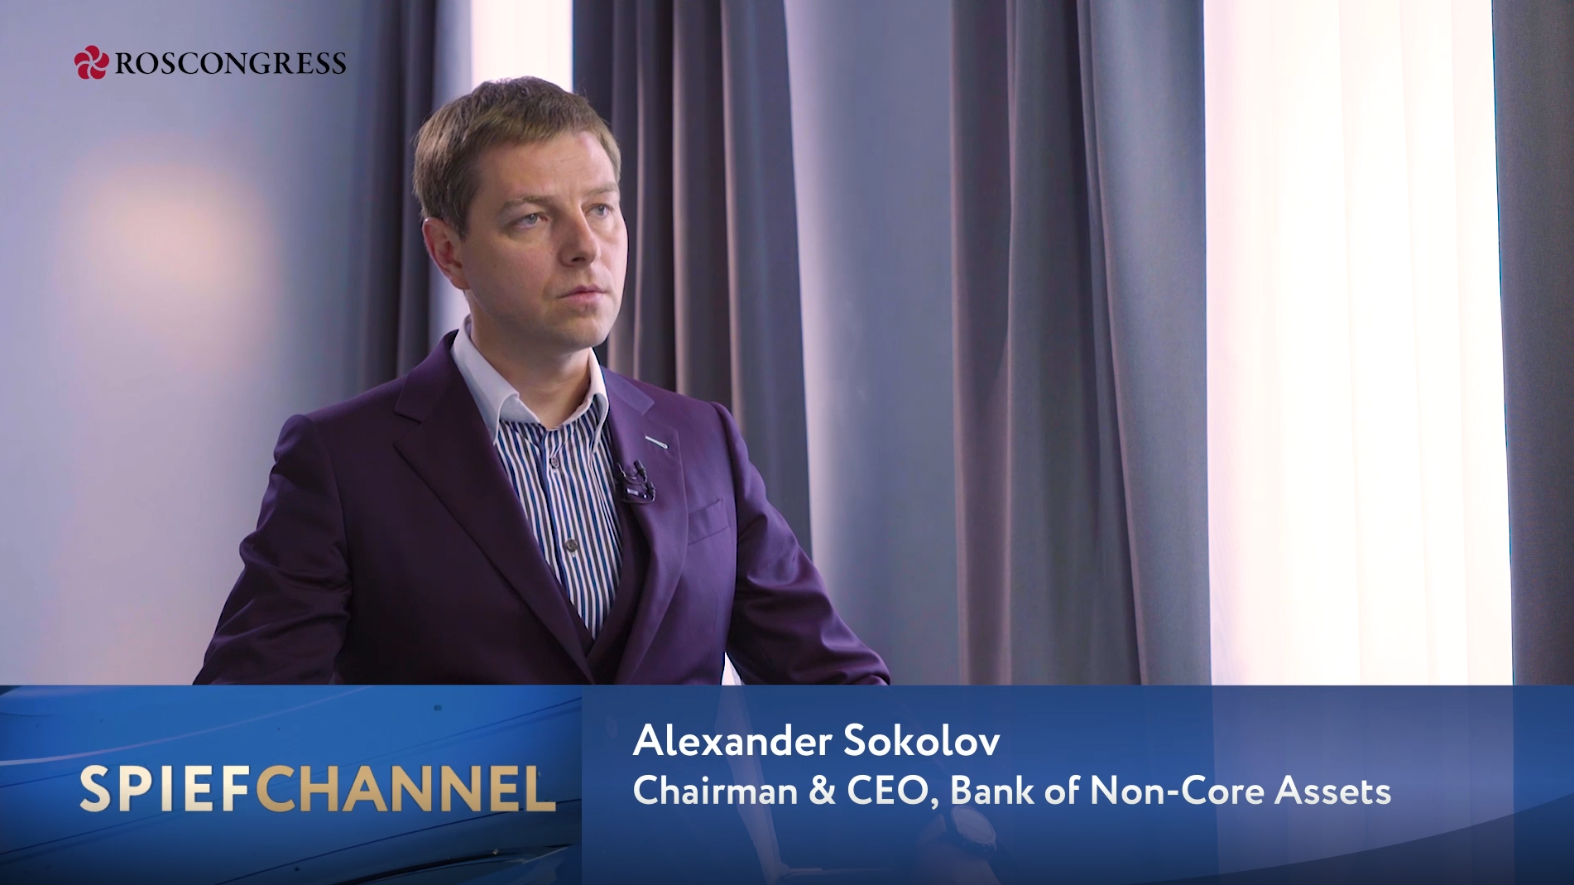 Alexander Sokolov, Bank of Non-Core Assets